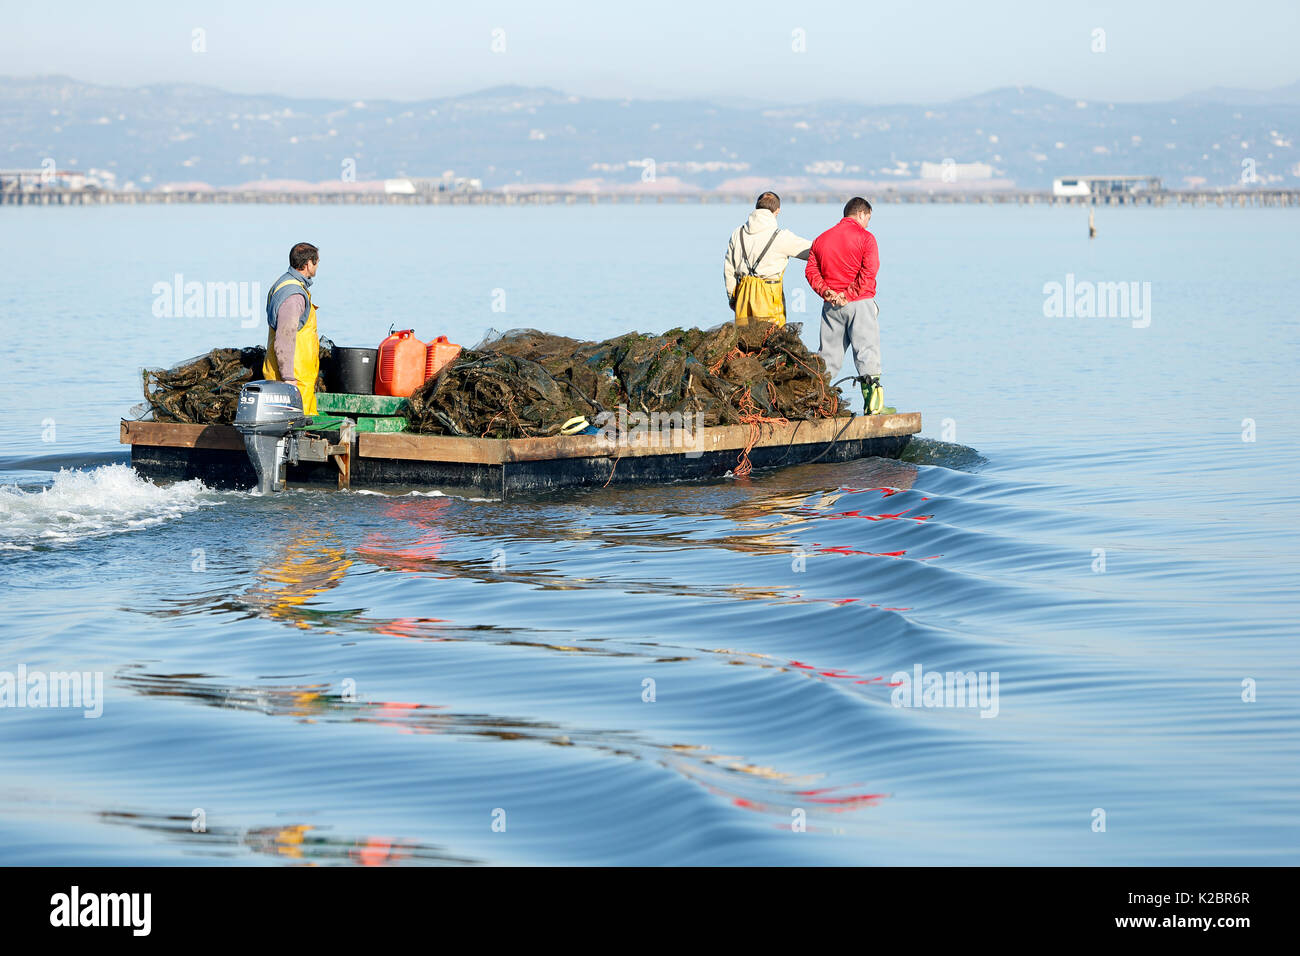 Mussel fishermen bringing in catch at sunrise, Ebro Delta, Tarragona. All non-editorial uses must be cleared individually. - Stock Image